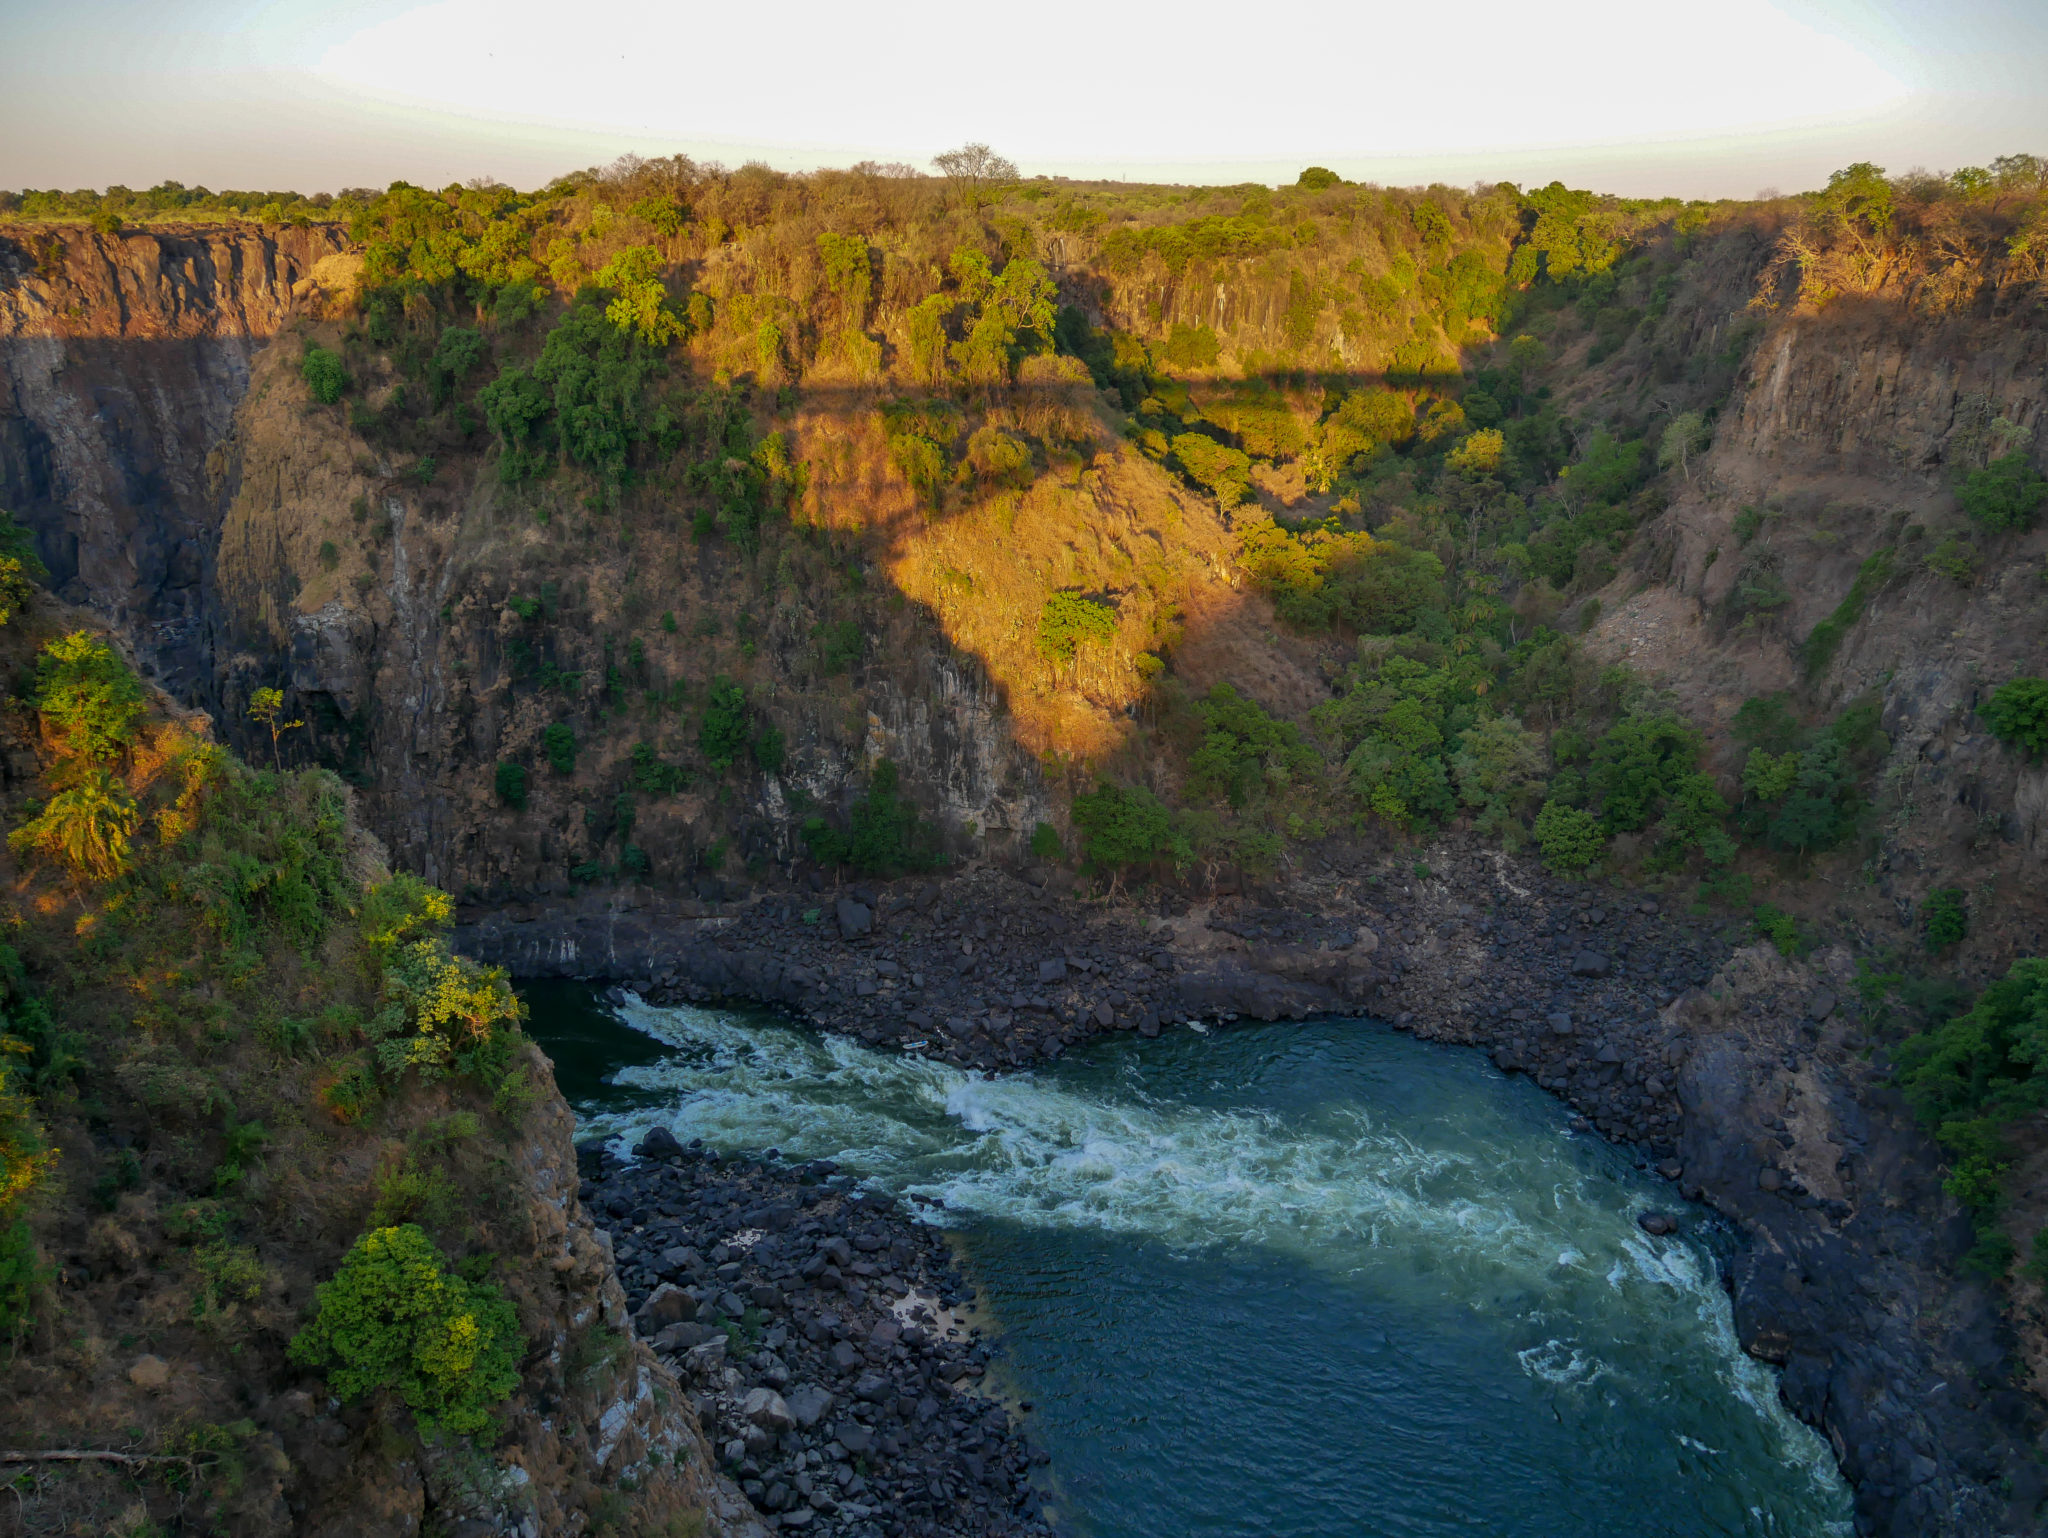 The view from Victoria Falls bridge of the boiling point